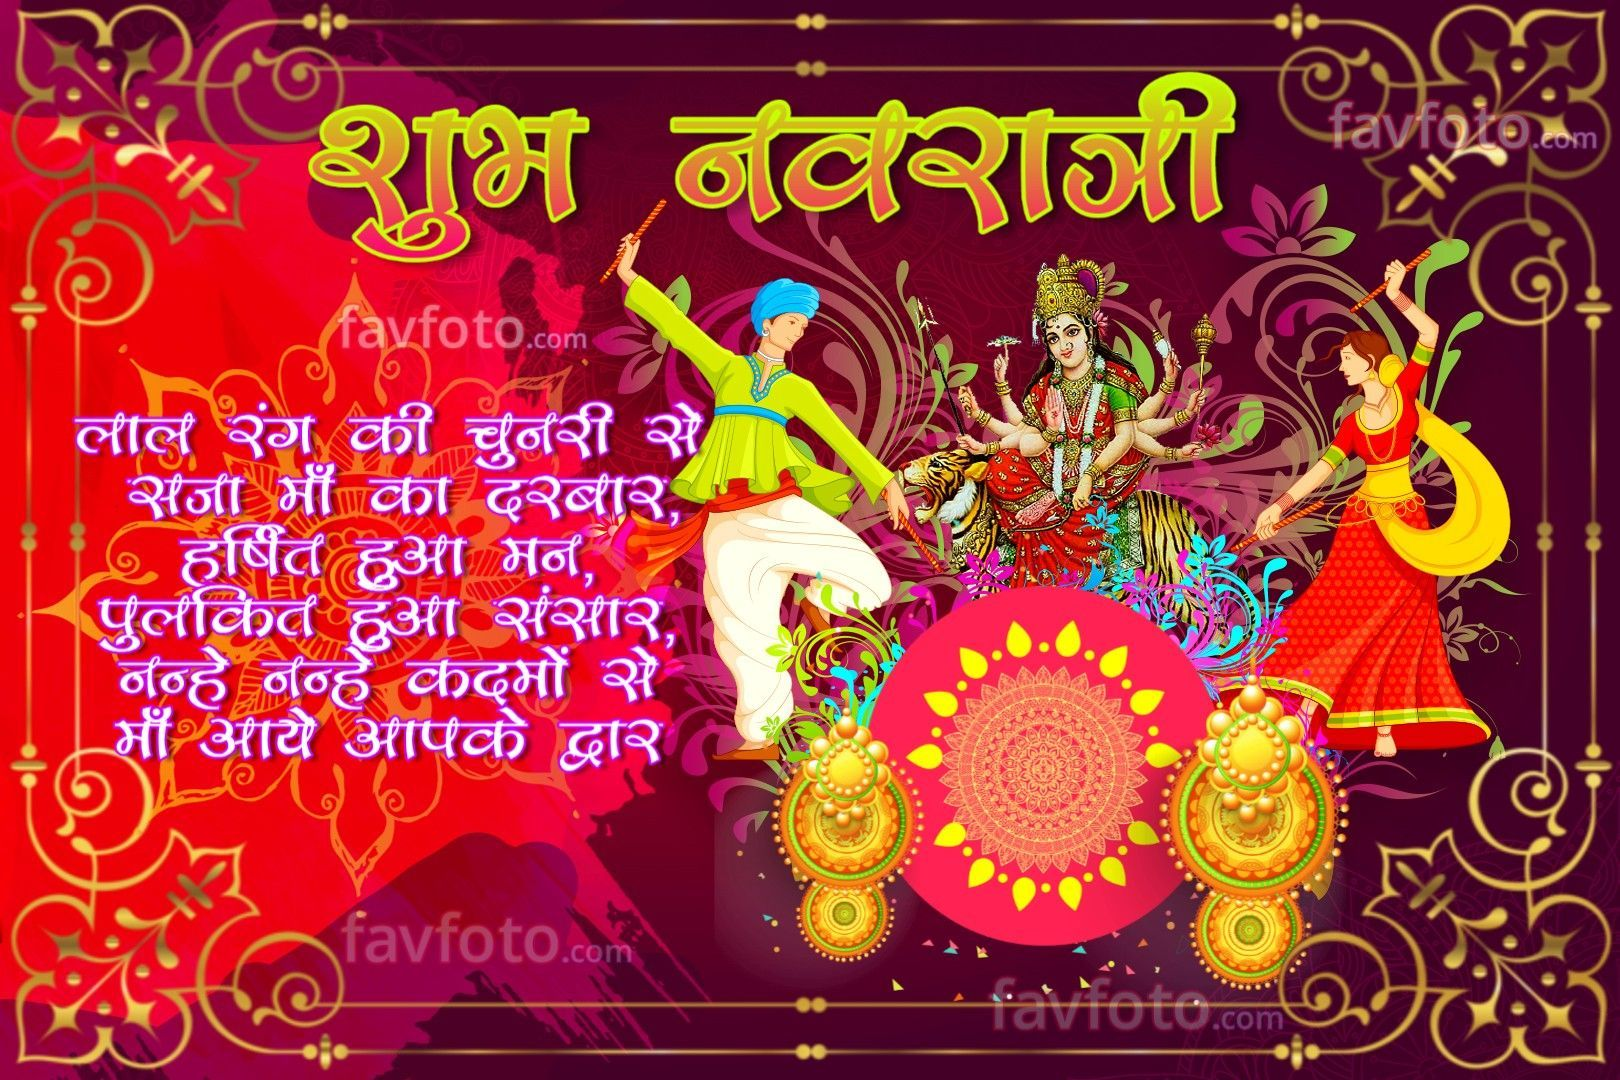 Beautiful Happy Navratri Wishes quotes in Hindi | शुभ नवरात्रि Images, Photo, Wallpaper |  #navratriwishes The celebration of Navratri is one of the glorious events in India, It's a ten-day-long program in which nine days are celebrated in the name of God Shavara and the chanting is celebrated and on the tenth day is celebrated as Vijayadashmi or Dussehra. According to the Hindu Lunar calendar, Navratri is celebrated on the brighter half of the Ashwin month, which, accordin #navratriwishes